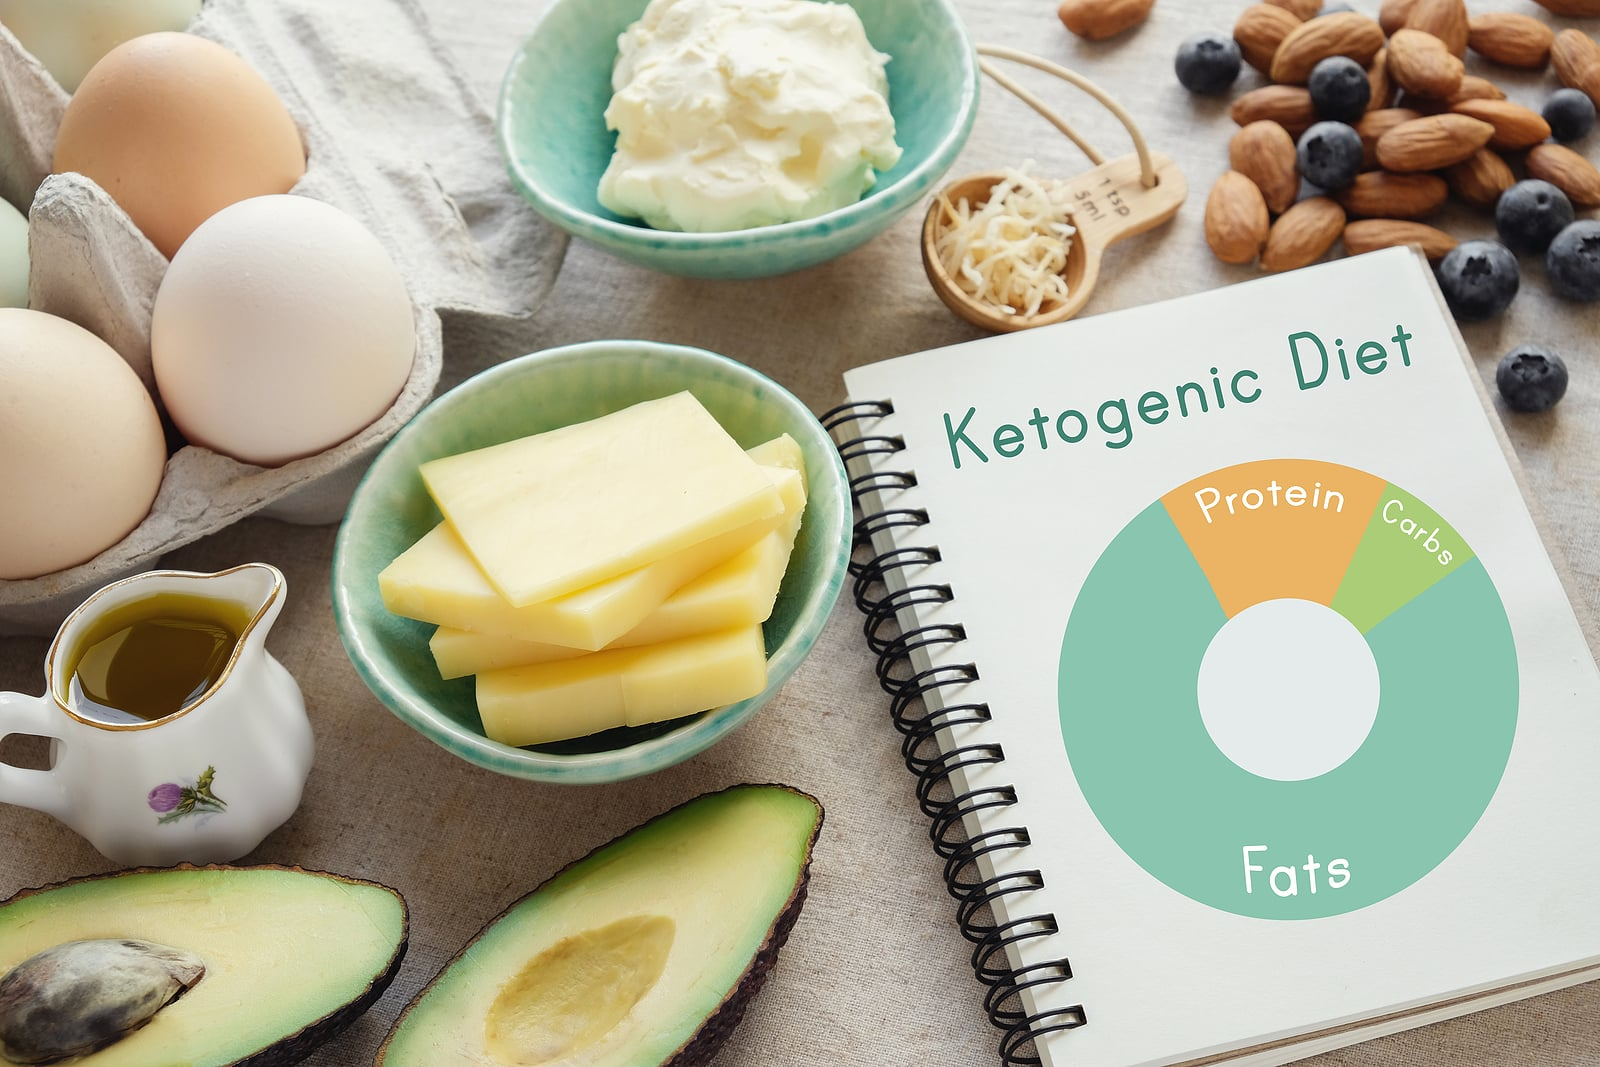 Is keto bad for hormones? Our perspective